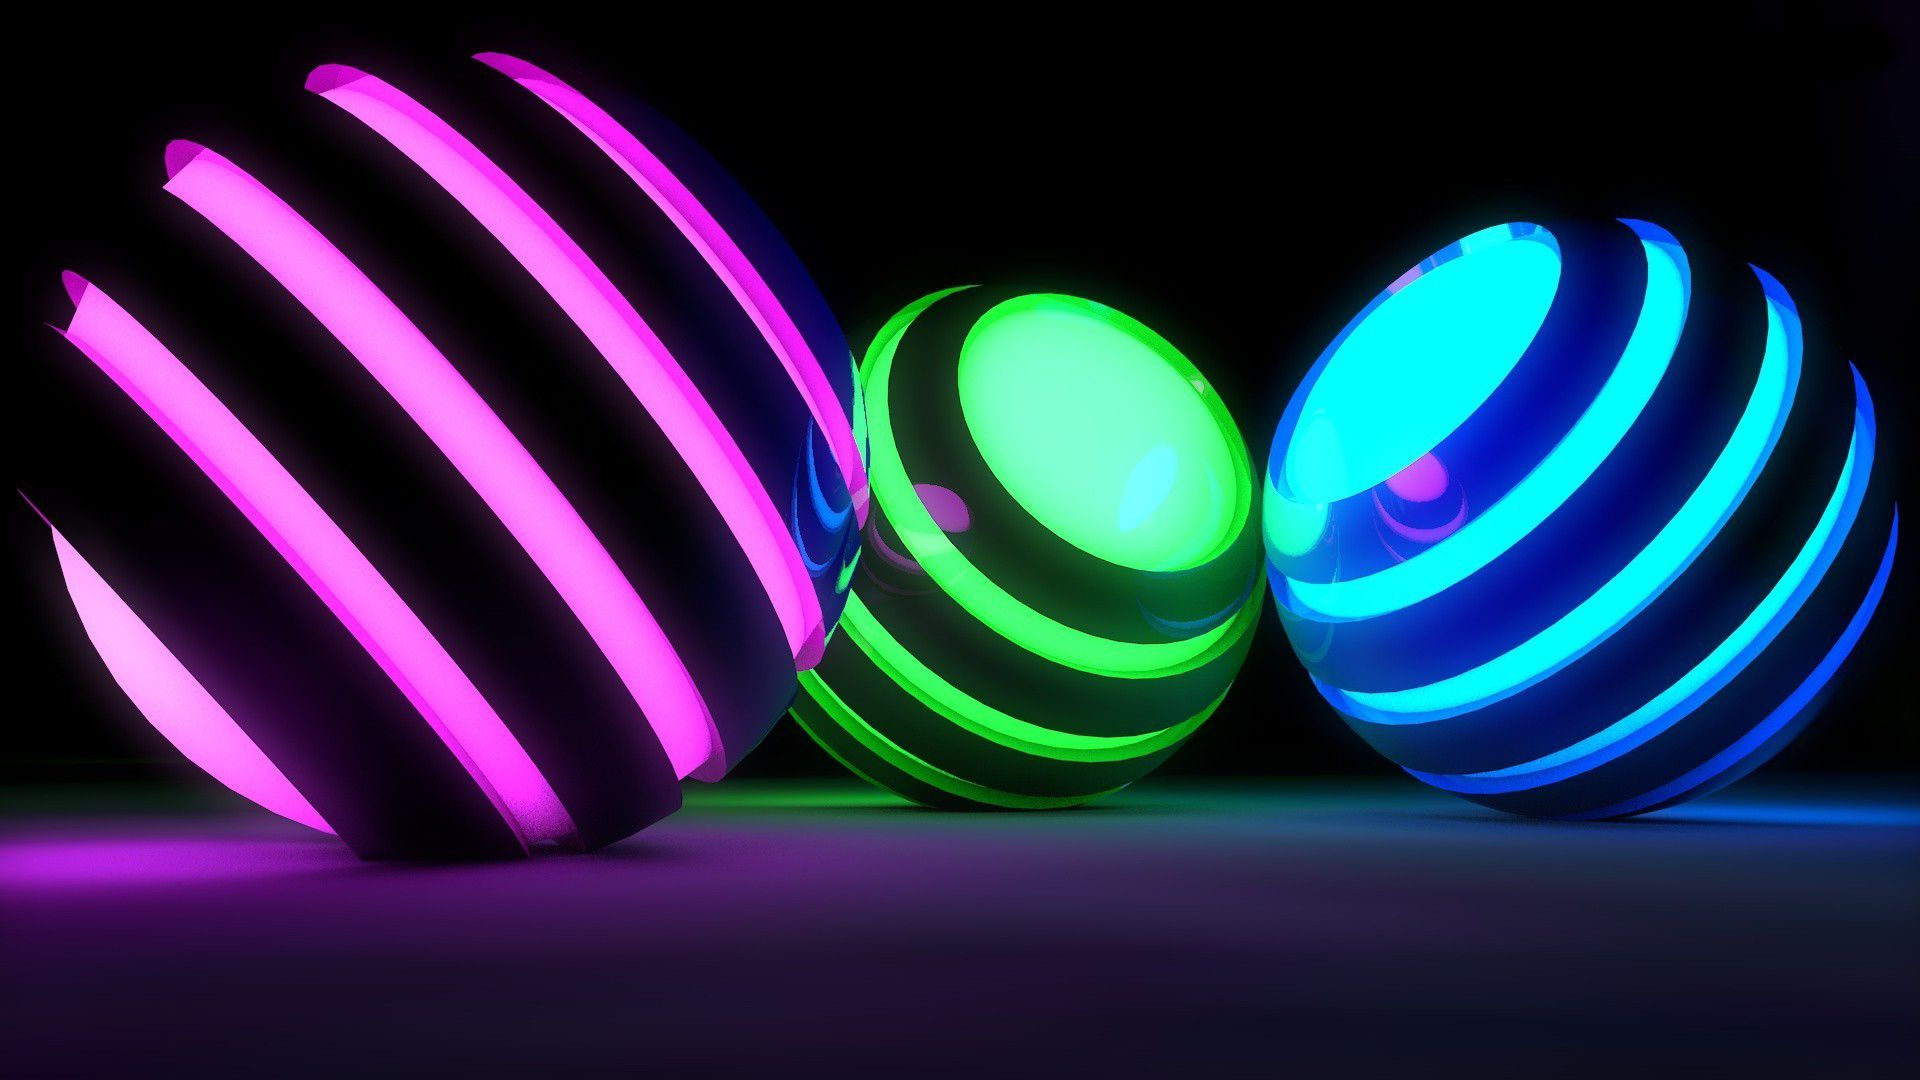 neon wallpapers : find best latest neon wallpapers in hd for your